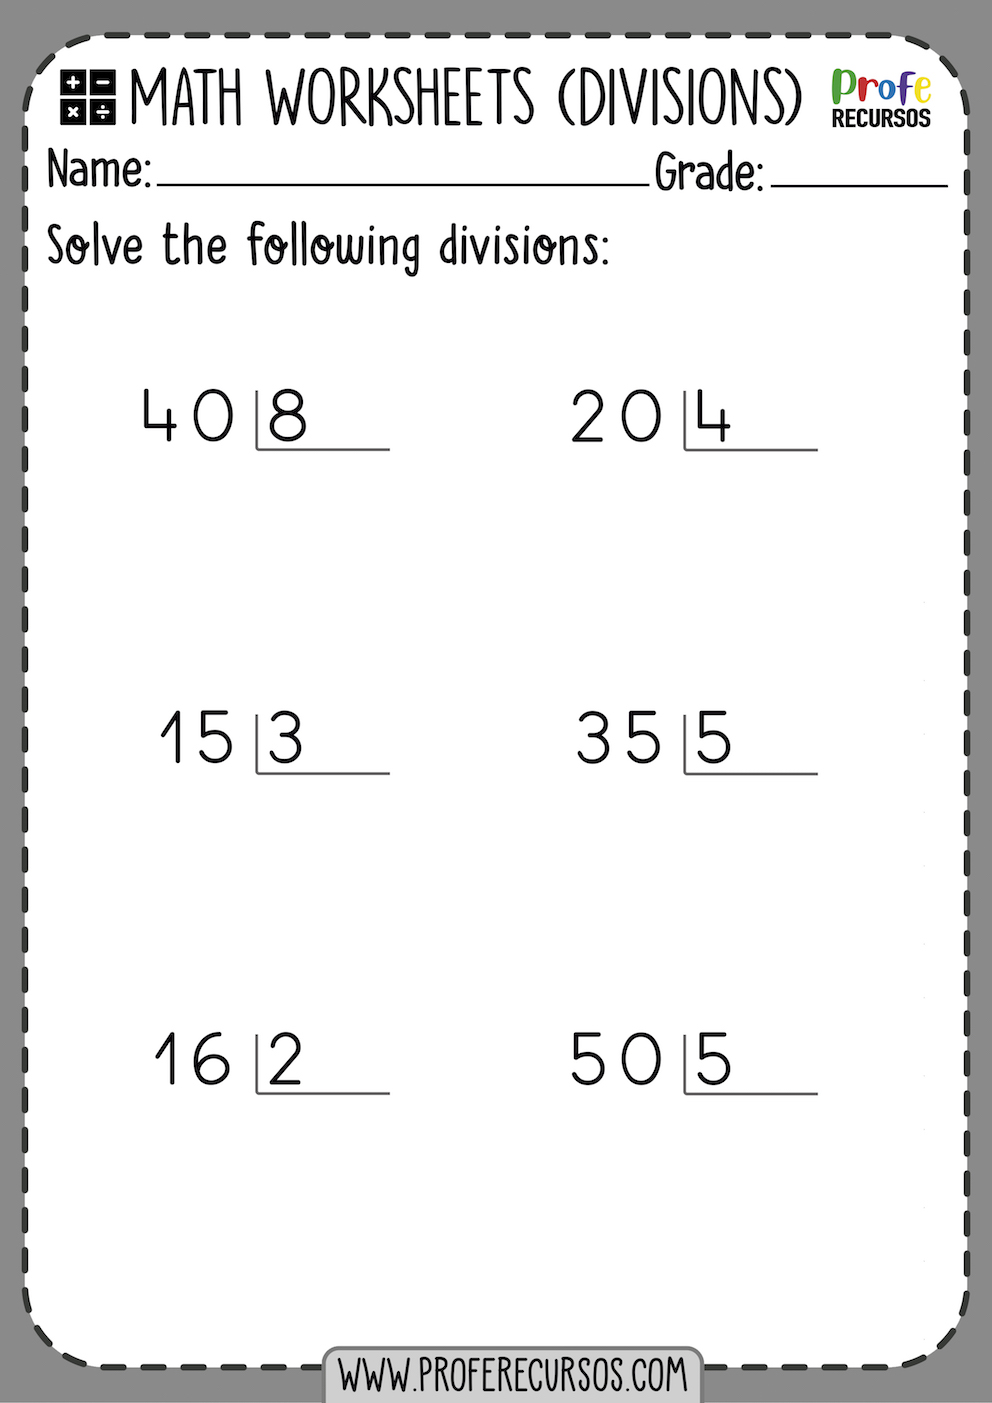 Division Worksheets for 3rd Grade